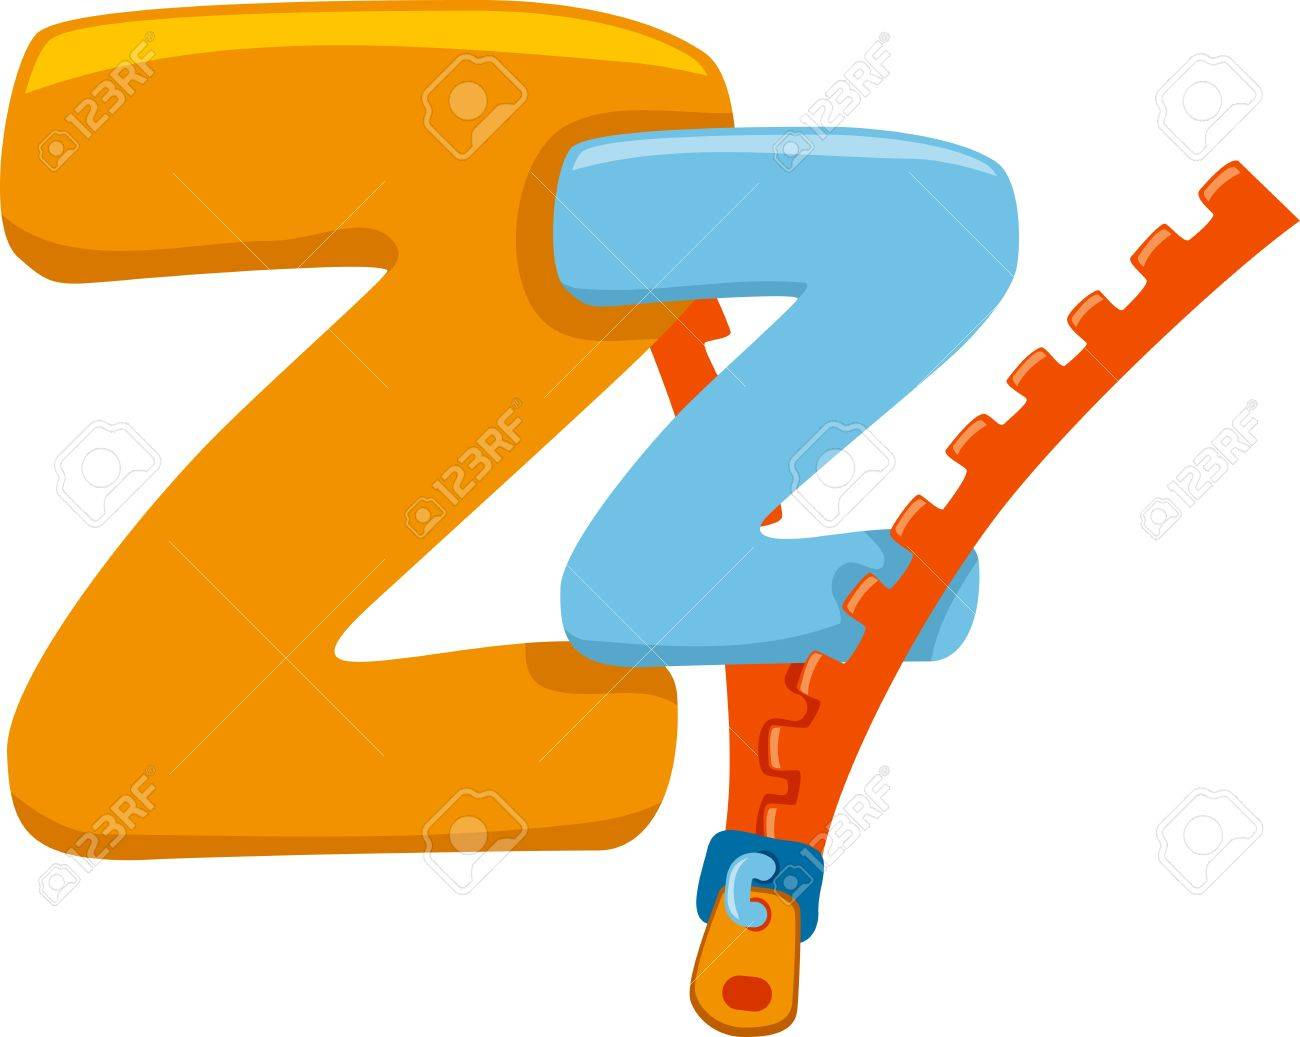 illustration featuring the letter z stock photo, picture and royalty